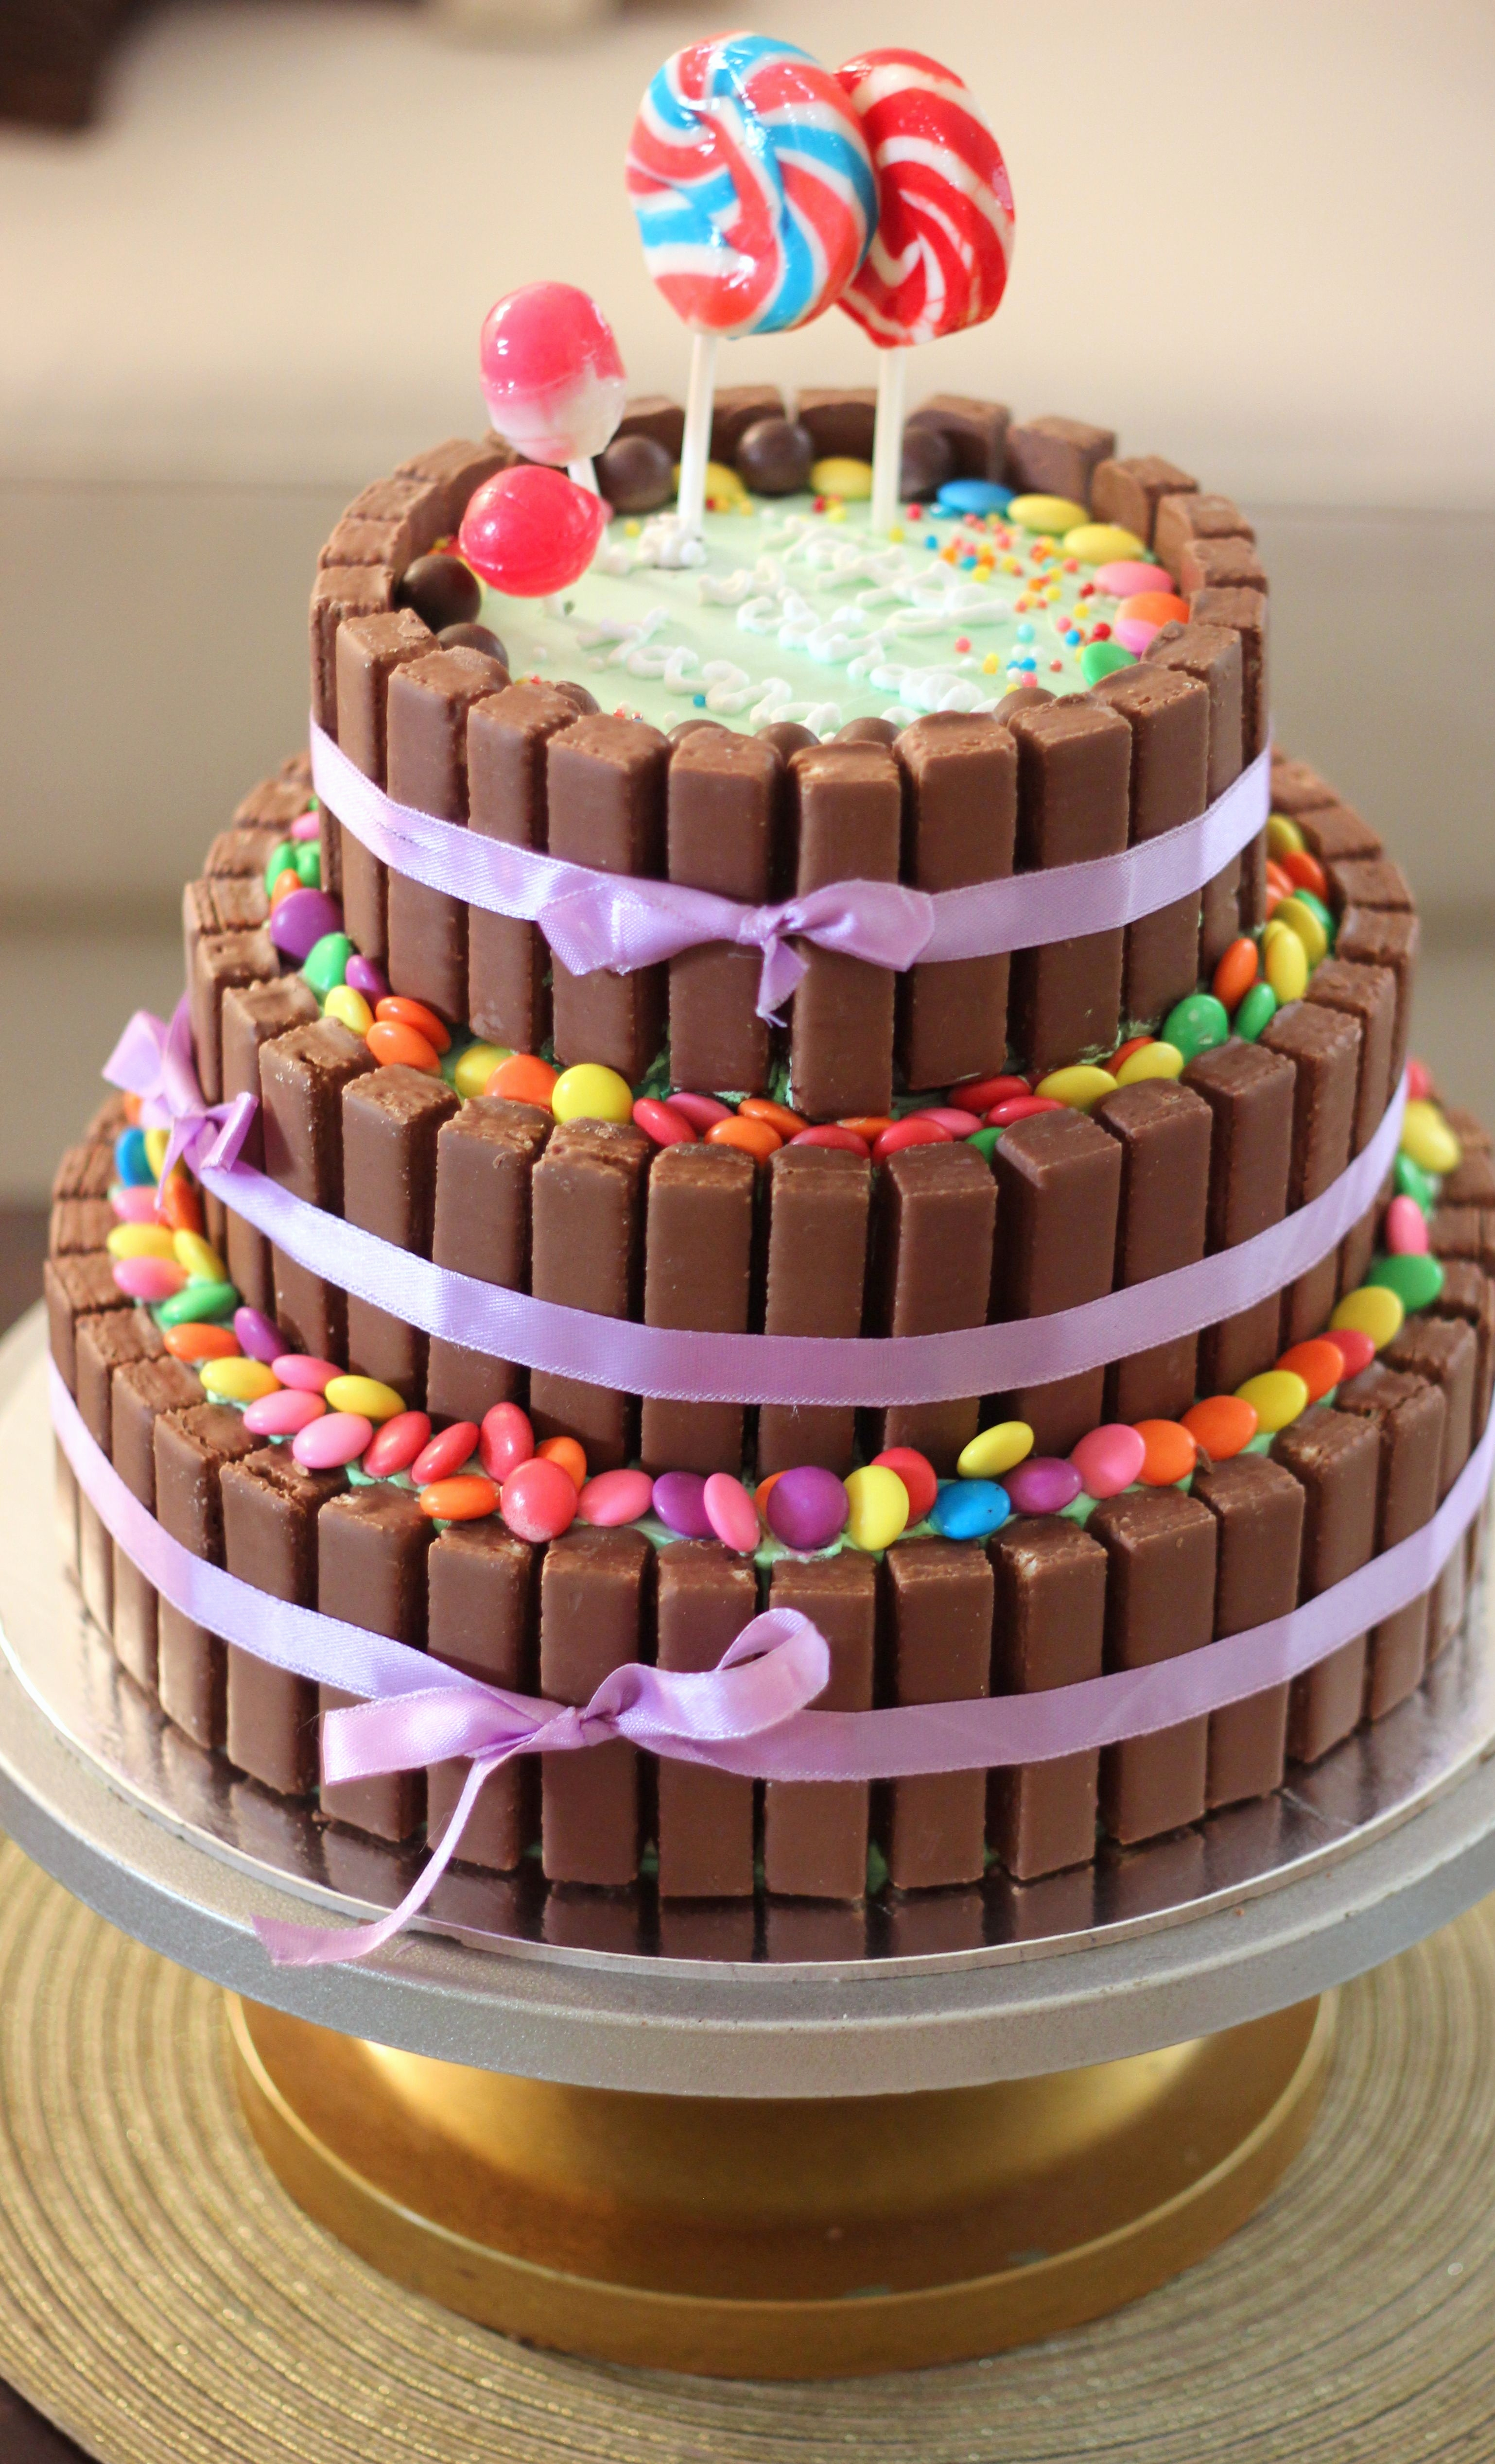 Smarties Kuchen Mit Kitkat Elegant 3 Tier Chocolate Birthday Cake Kitkat Cake with the Kitkats